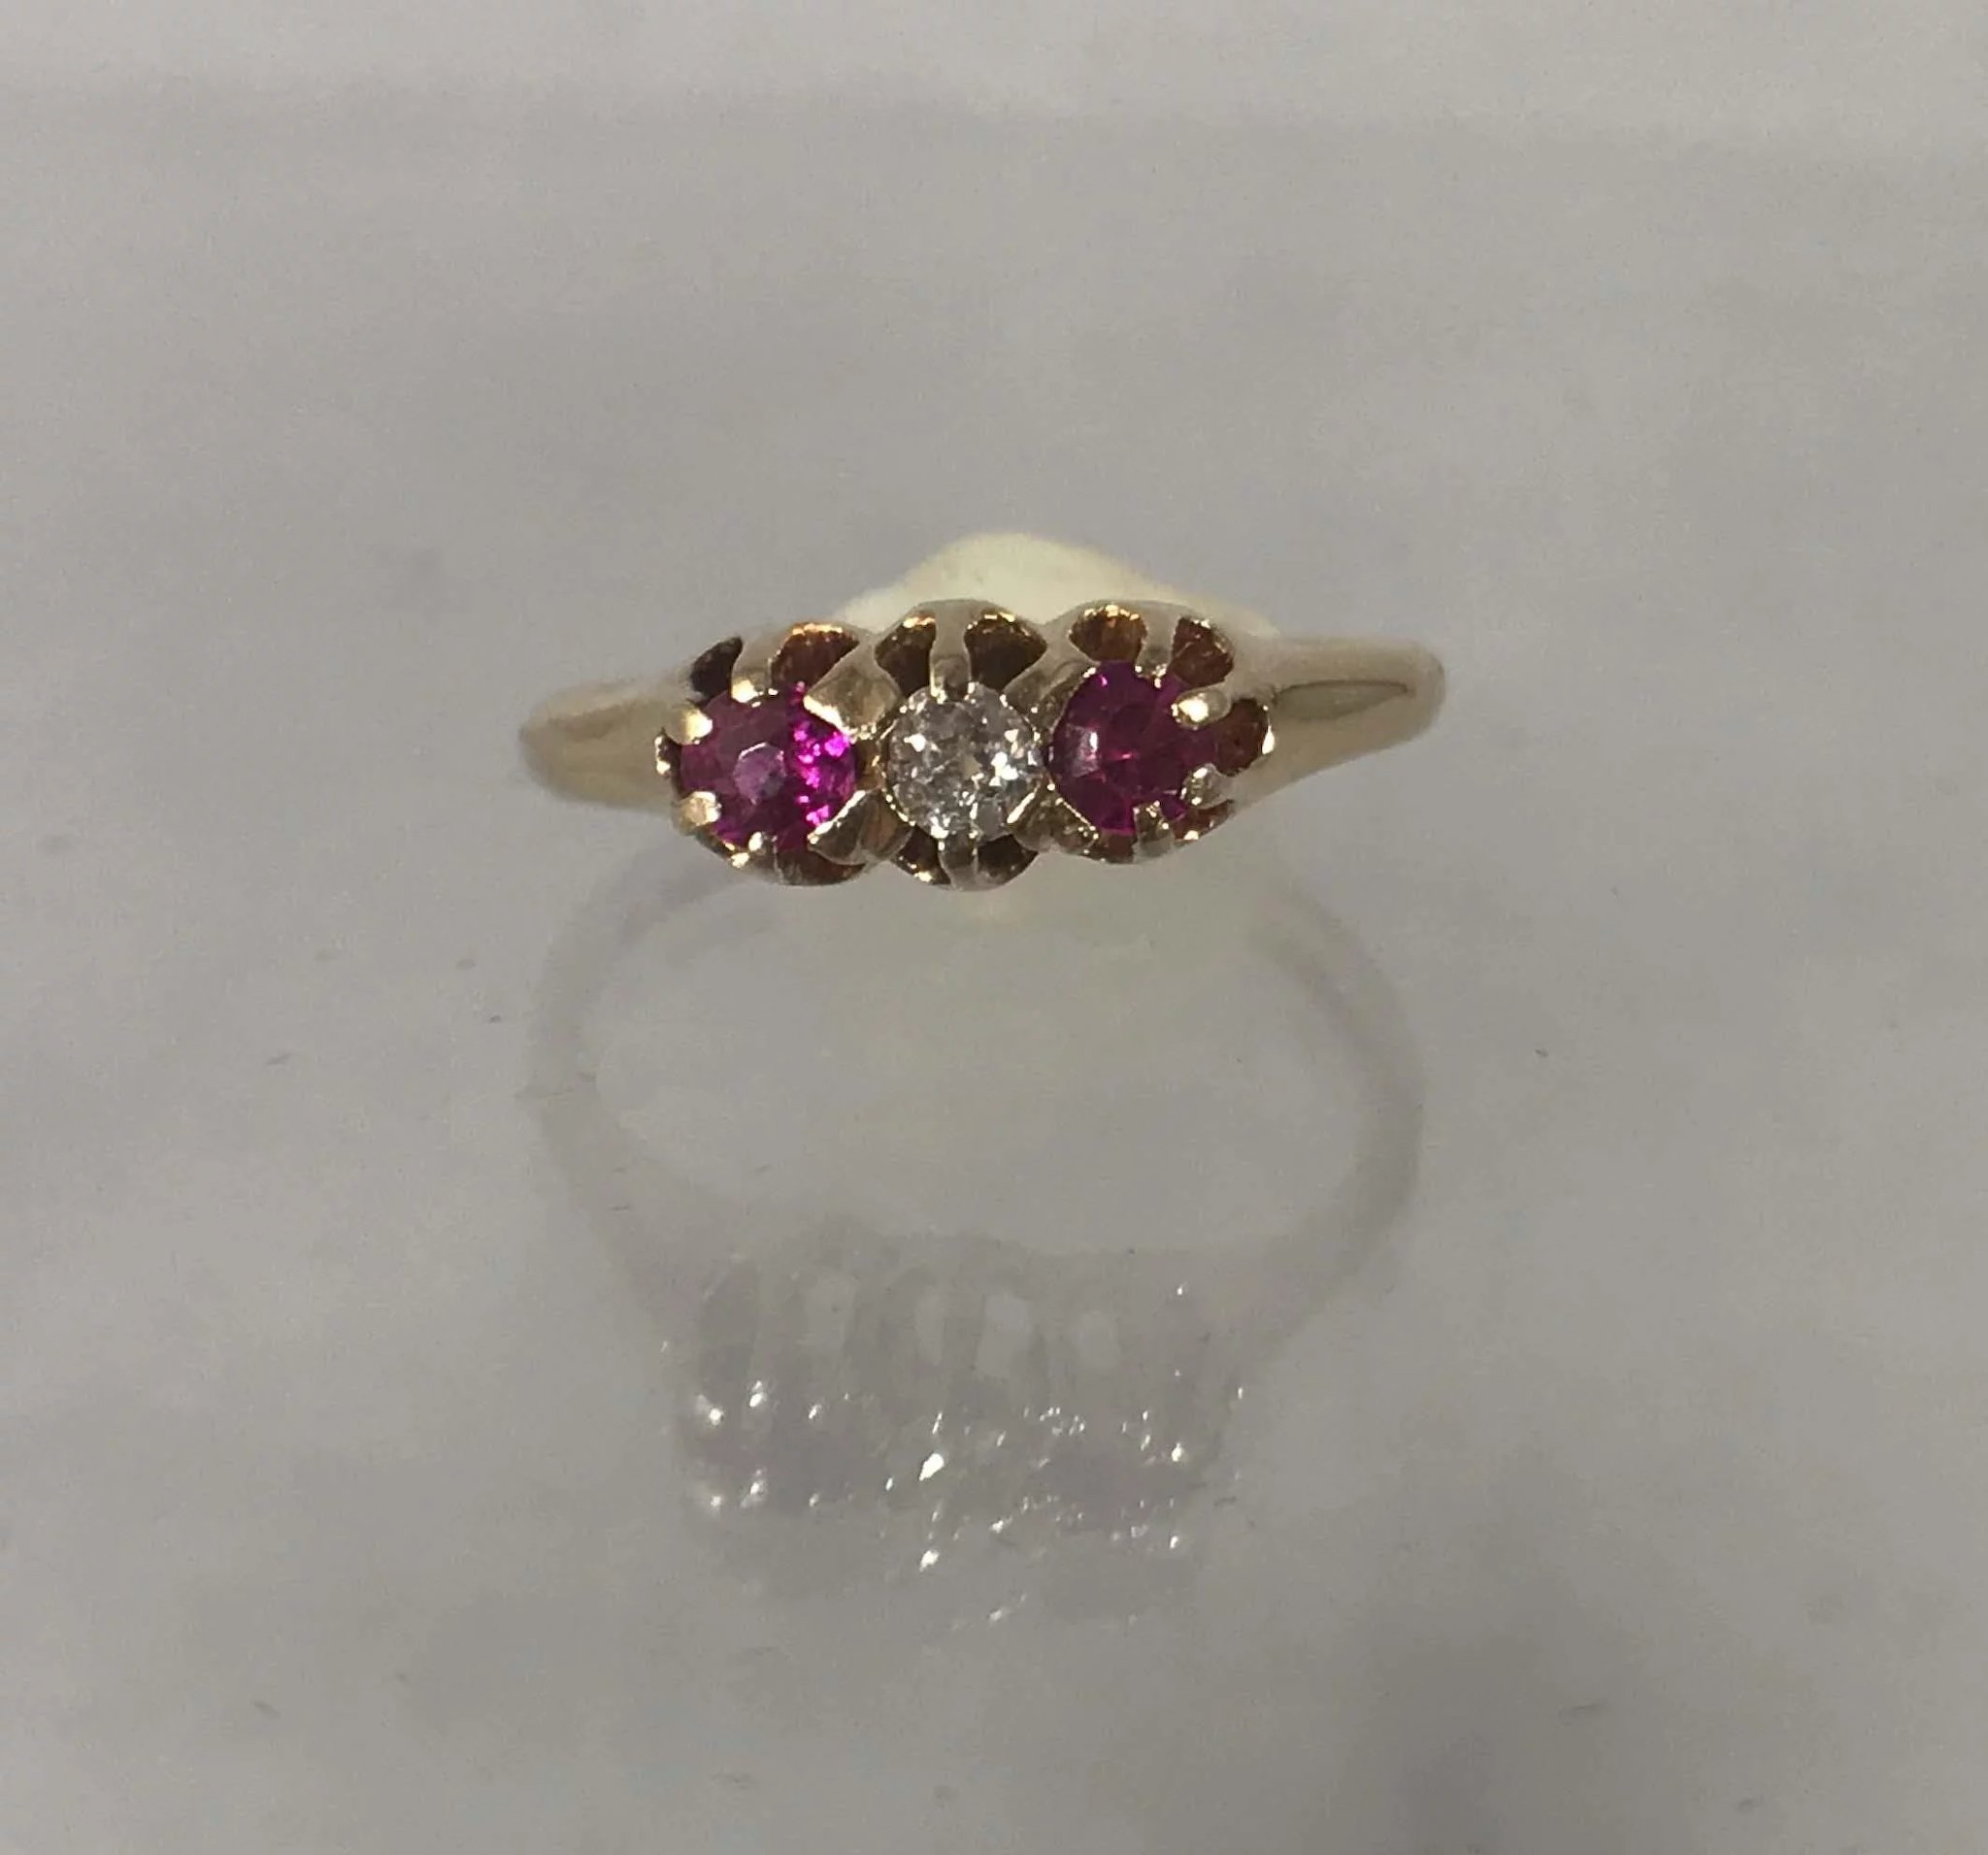 ring and omi product diamond stone jewelry ruby prive priv platinum